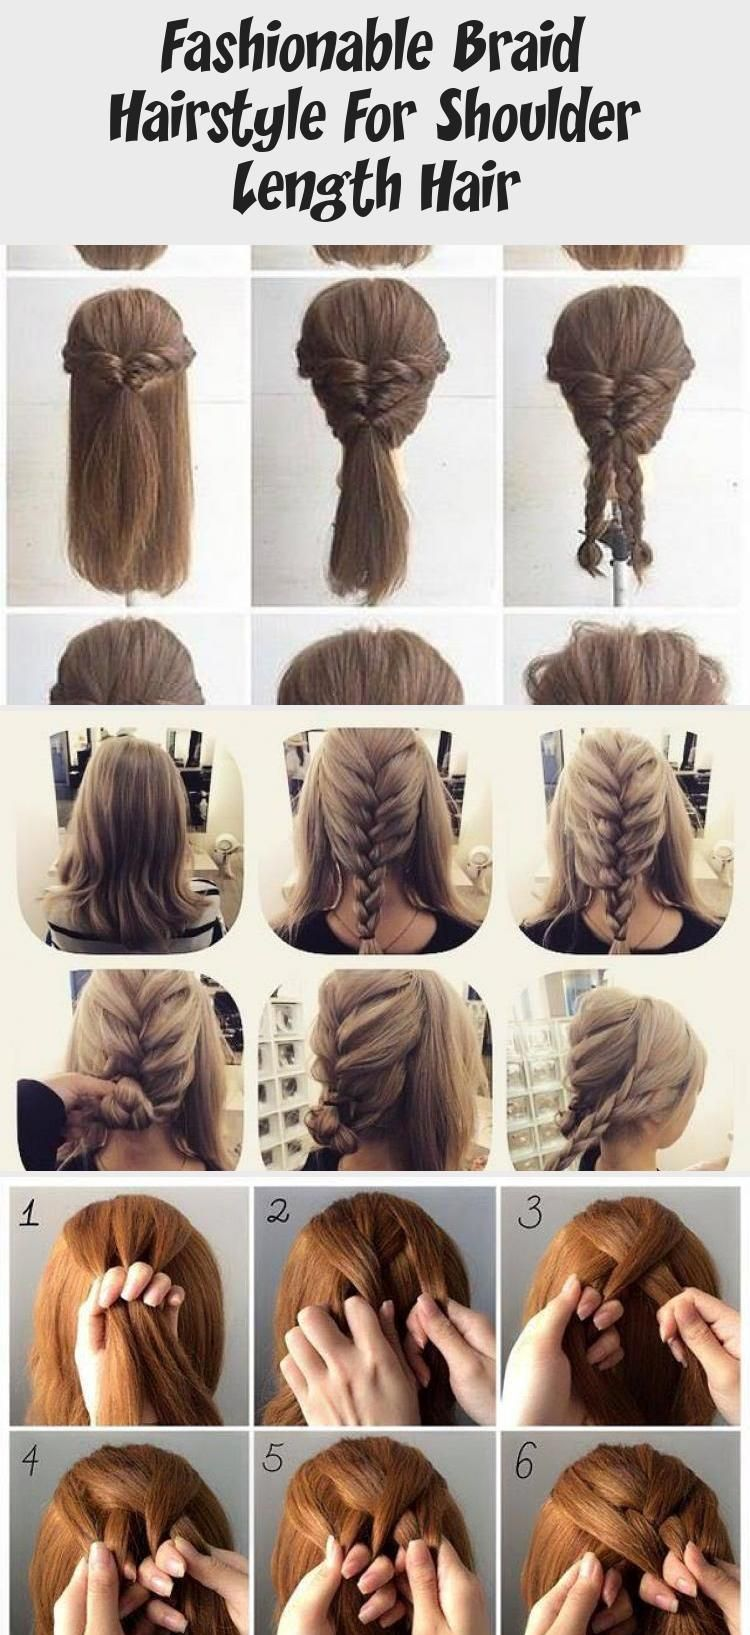 Fashionable Braid Hairstyle For Shoulder Length Hair Shoulder Length Hair Tuto Braid Fashionable Ha In 2020 Shoulder Length Hair Braided Hairstyles Hair Lengths